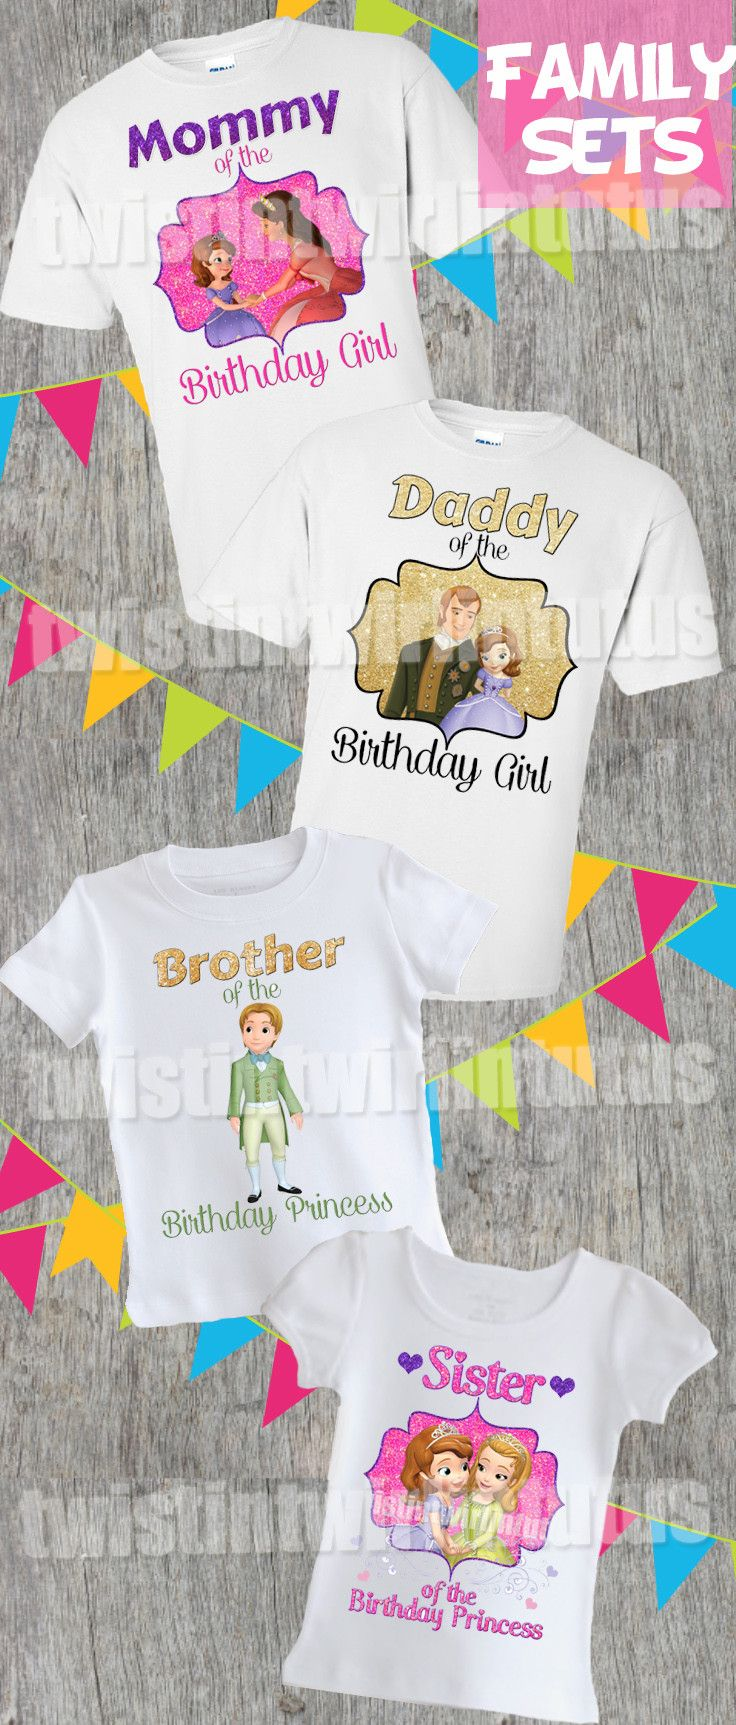 Sofia the First Family Shirt Set | Sofia the First Birthday Shirts | Sofia the First Birthday Party Ideas | Princess Sofia Family Shirts | Princess Sofia Birthday Shirts | Princess Sofia Birthday Party Ideas | Twistin Twirlin Tutus #sofiathefirstbirthday